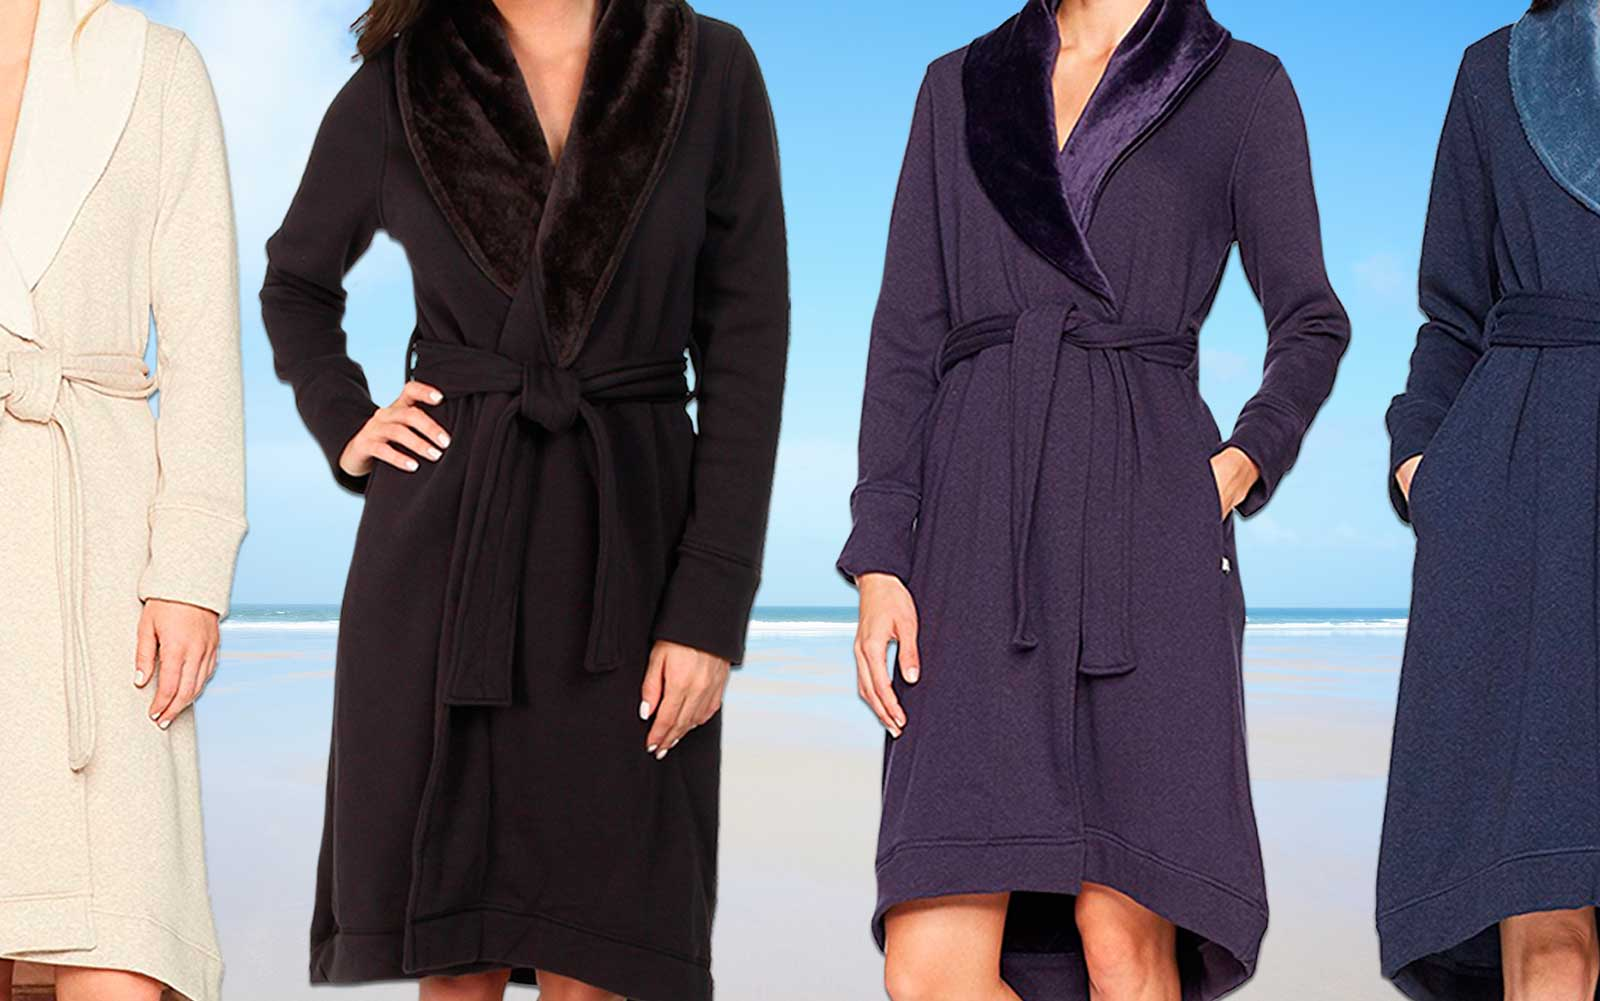 The Ugg Duffield Robe Is the Easiest Way to Have a Luxury Staycation